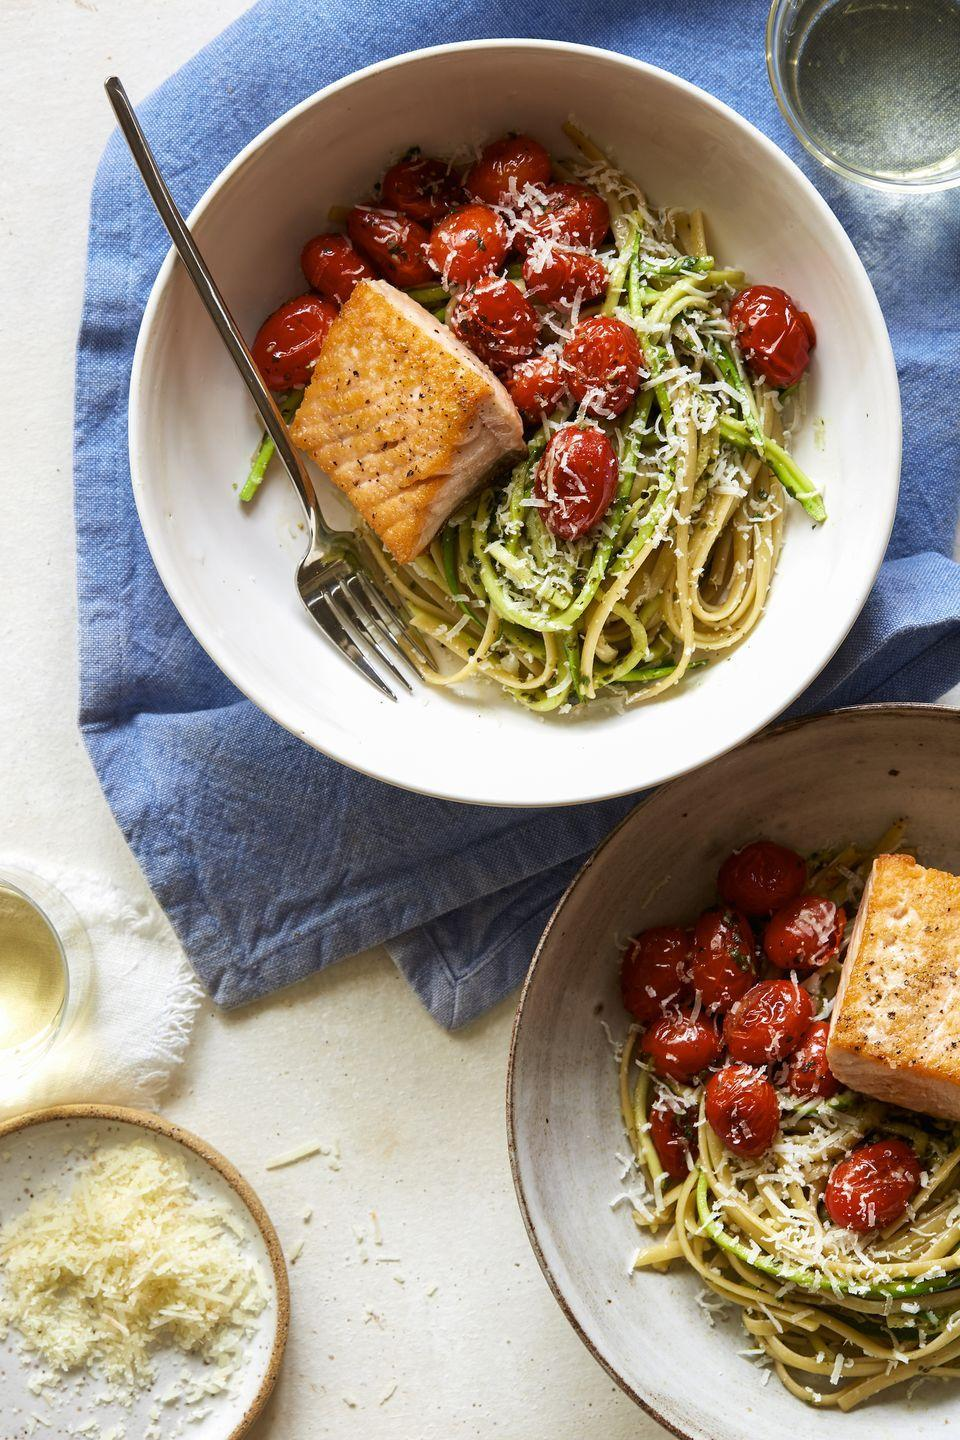 "<p>A little pasta, a little zoodle.</p><p>Get the recipe from <a href=""https://www.delish.com/cooking/recipe-ideas/recipes/a53316/50-50-pesto-spaghetti-recipe/"" rel=""nofollow noopener"" target=""_blank"" data-ylk=""slk:Delish"" class=""link rapid-noclick-resp"">Delish</a>.</p>"